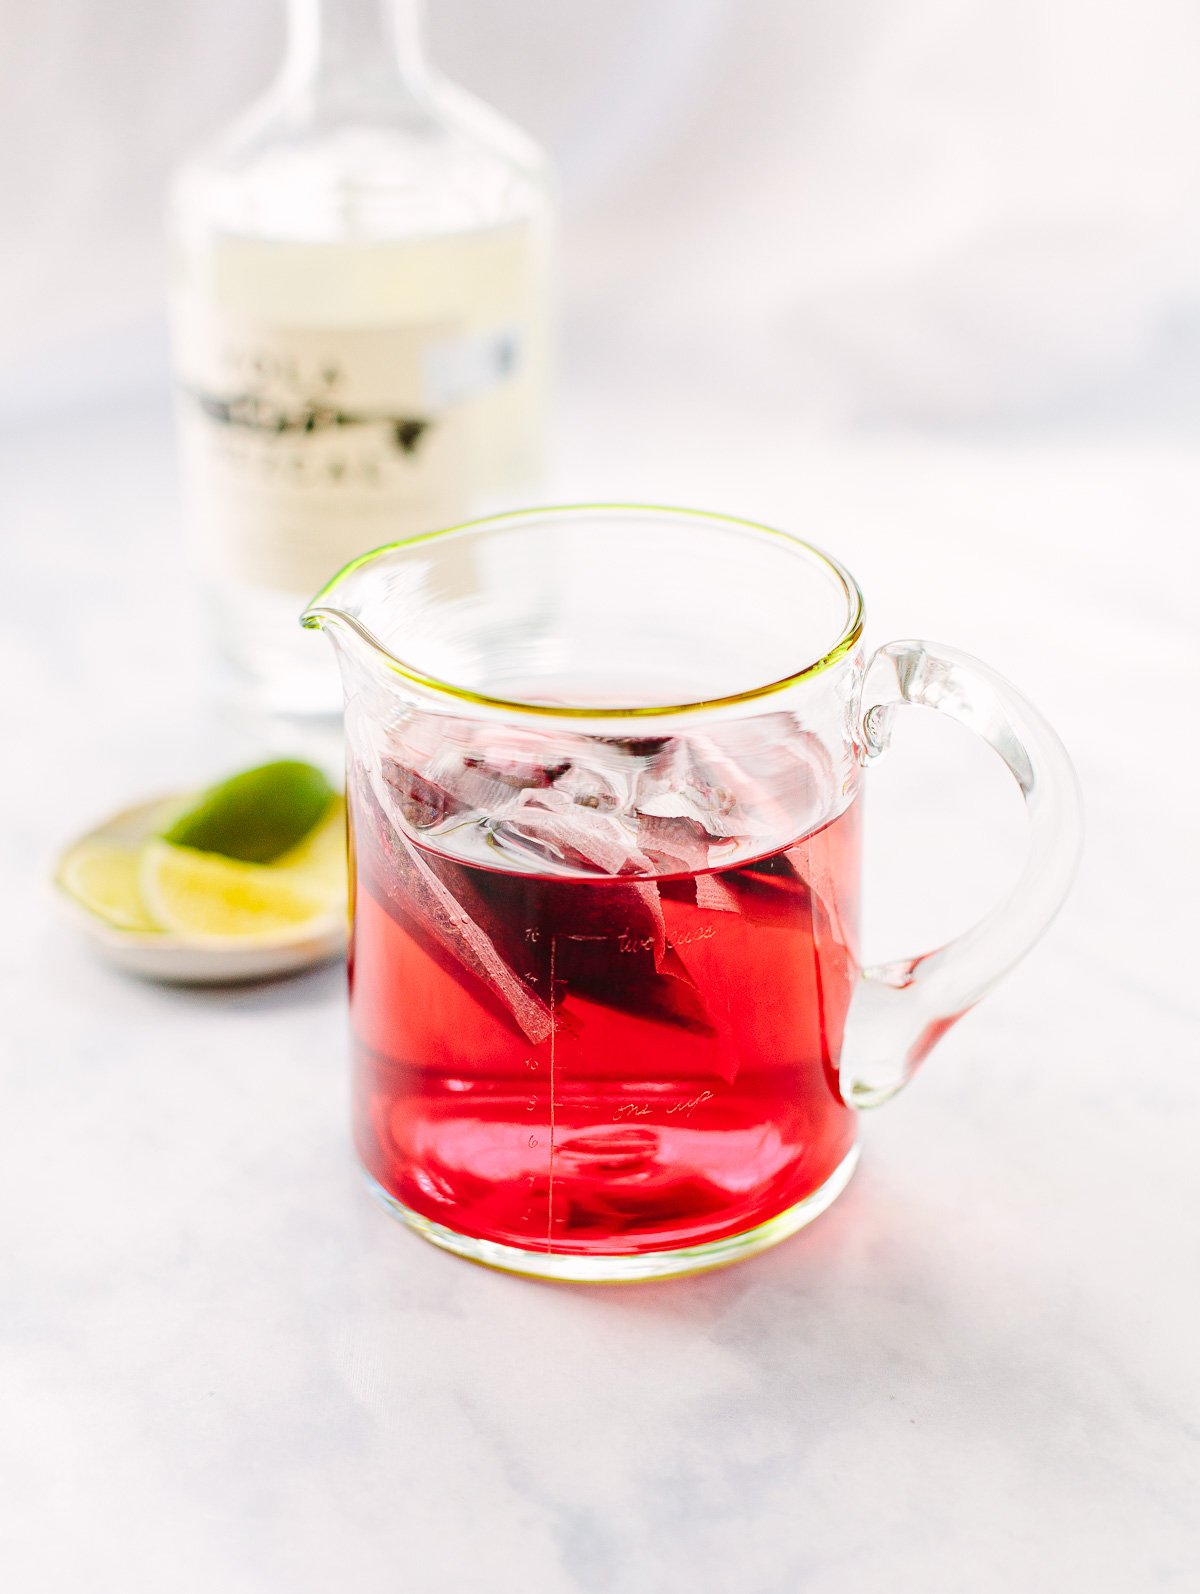 Red Hibiscus tea bags steeping in a clear measuring cup with lime slices in the background.